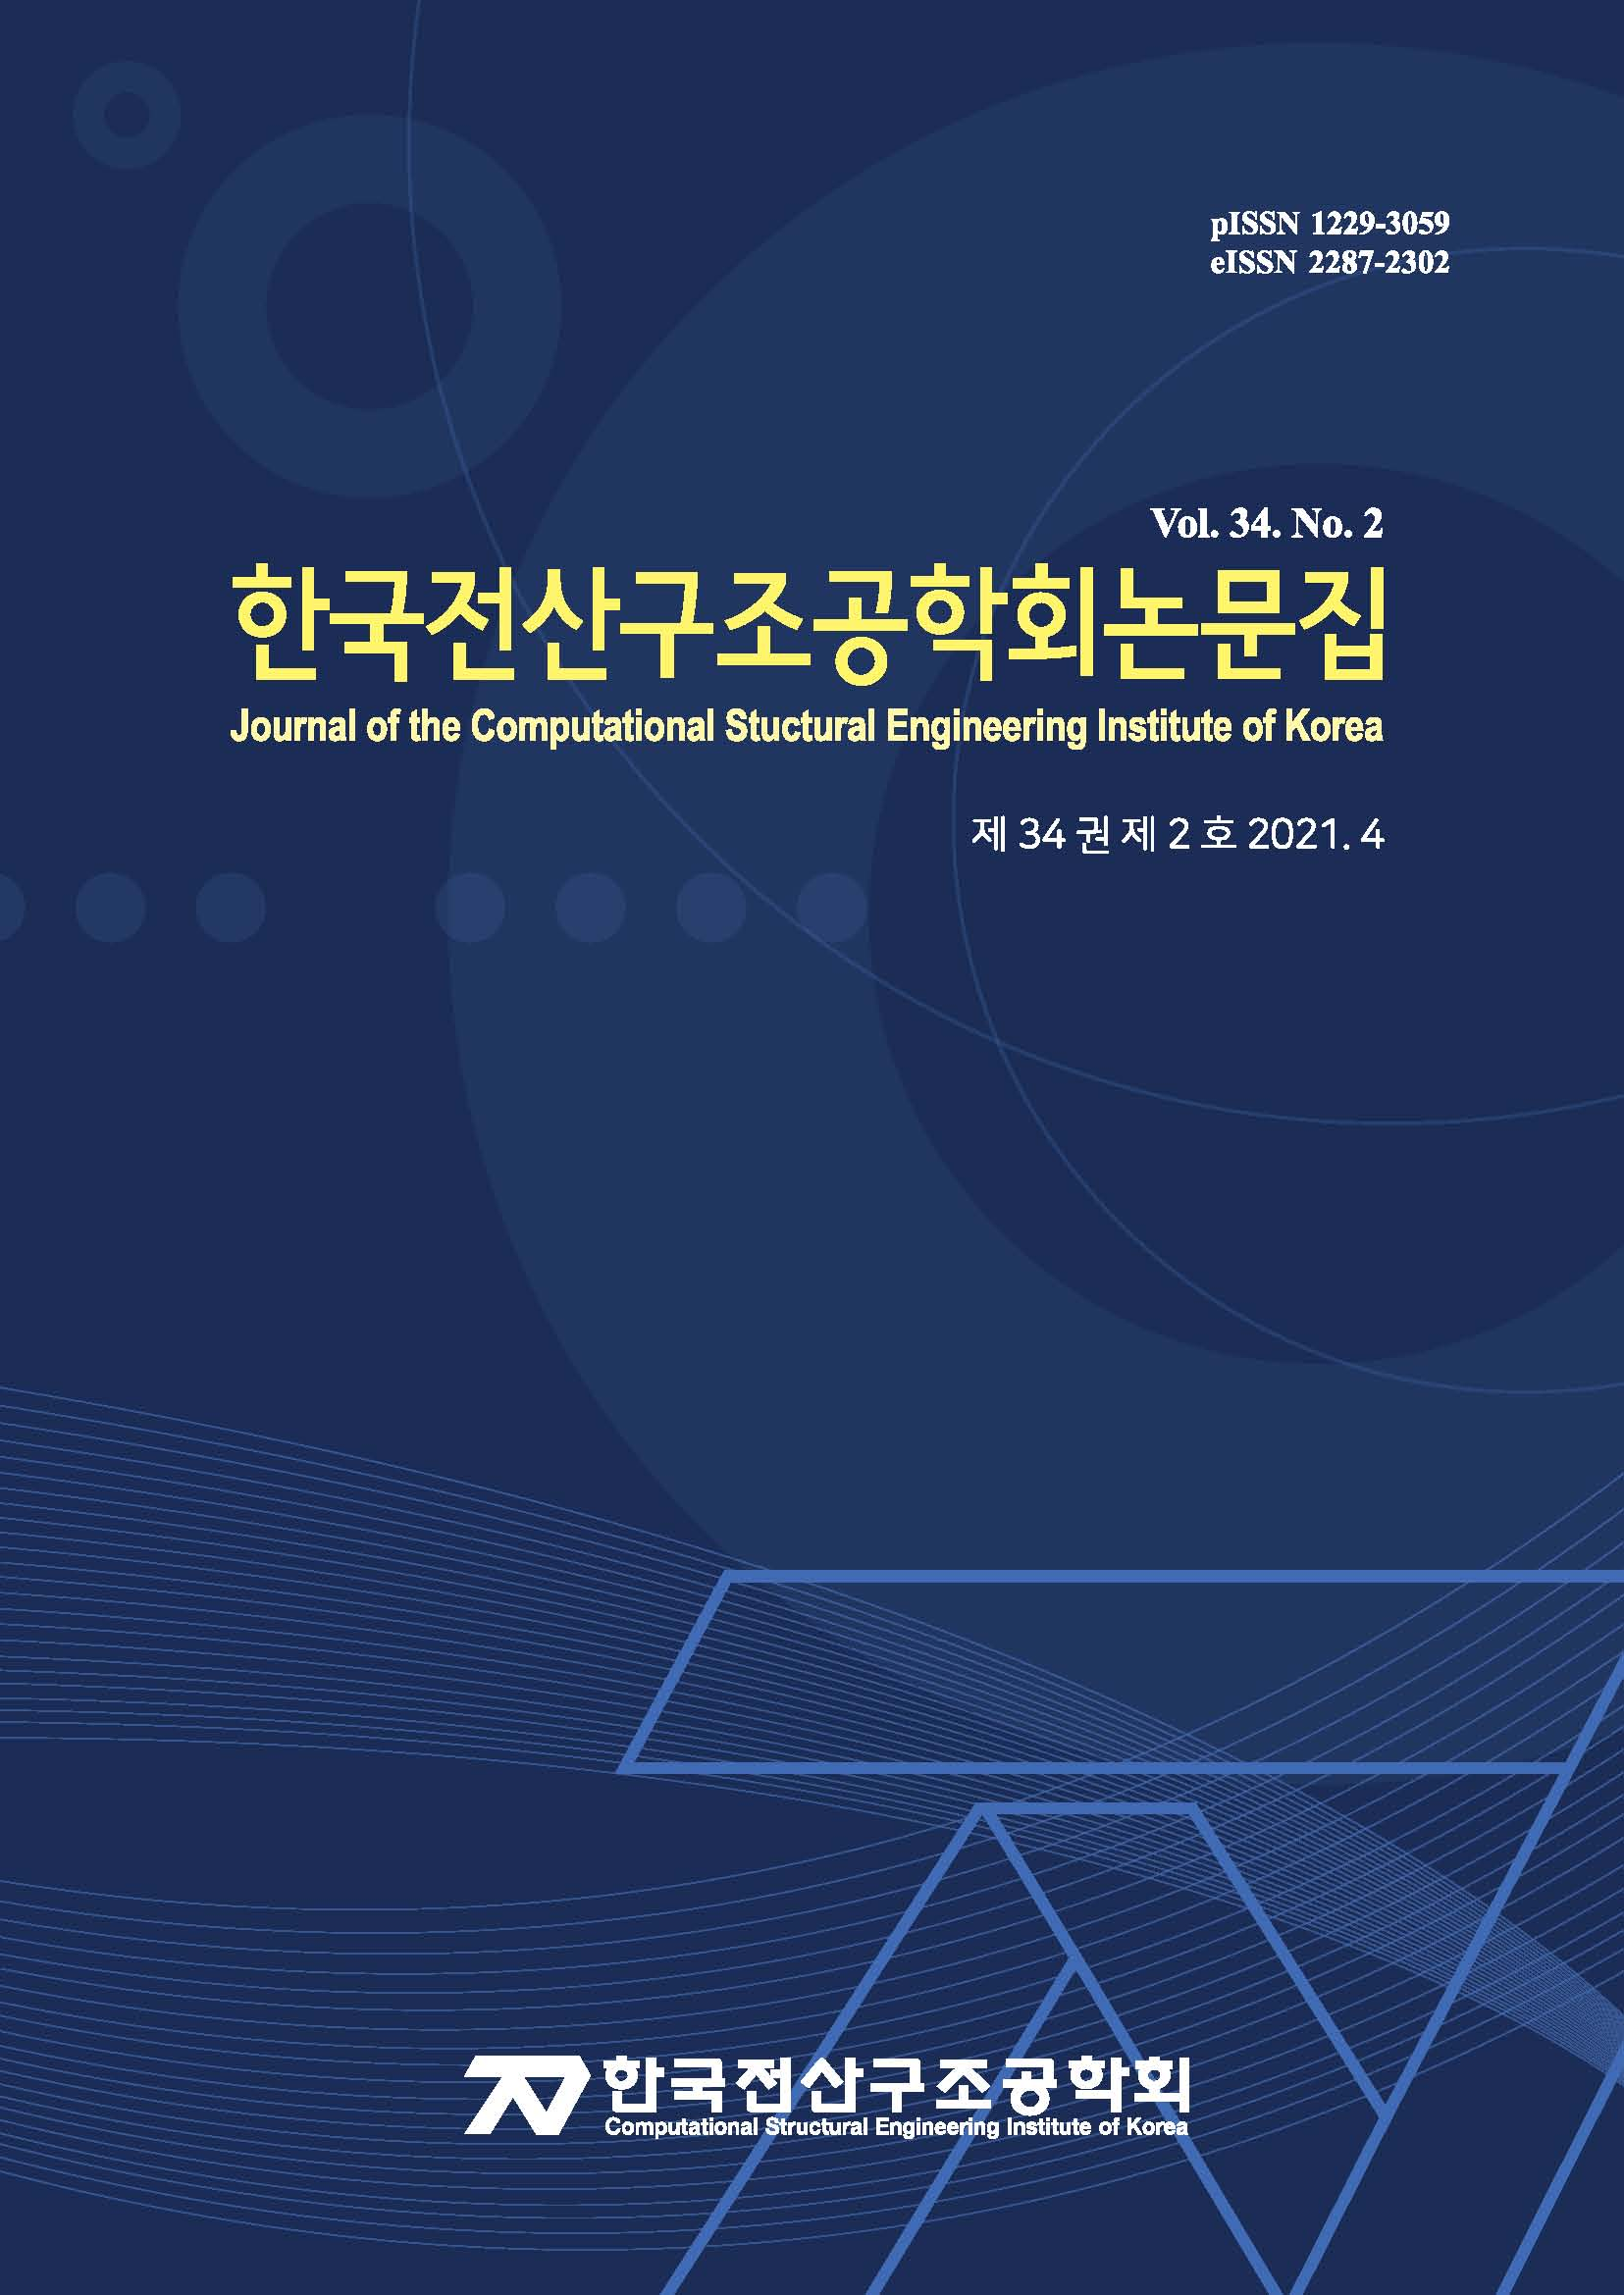 Journal of the Computational Structural Engineering Institute of Korea